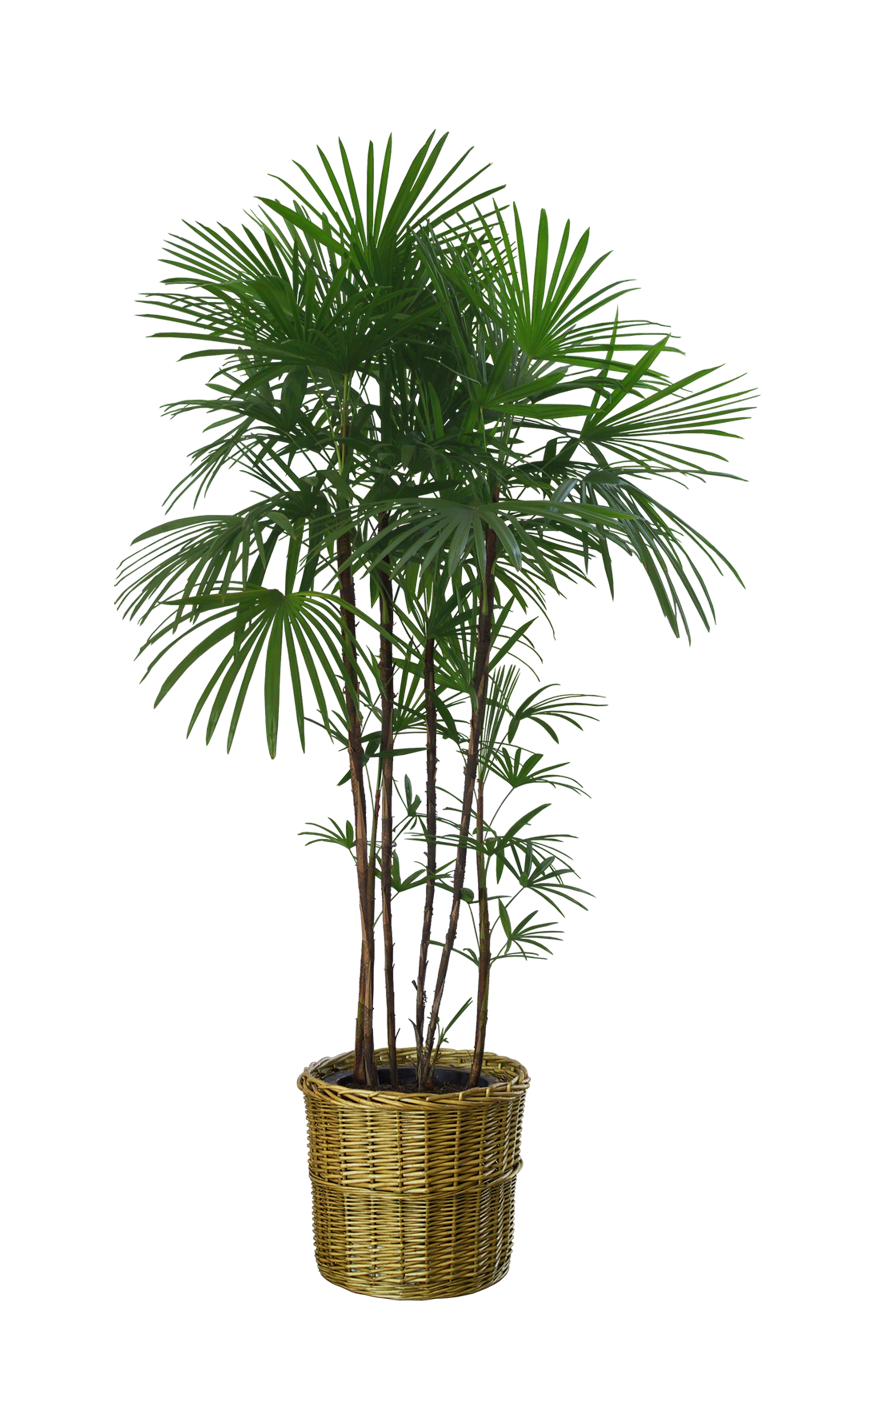 Potted palm tree png. Flowerpot houseplant garden trees